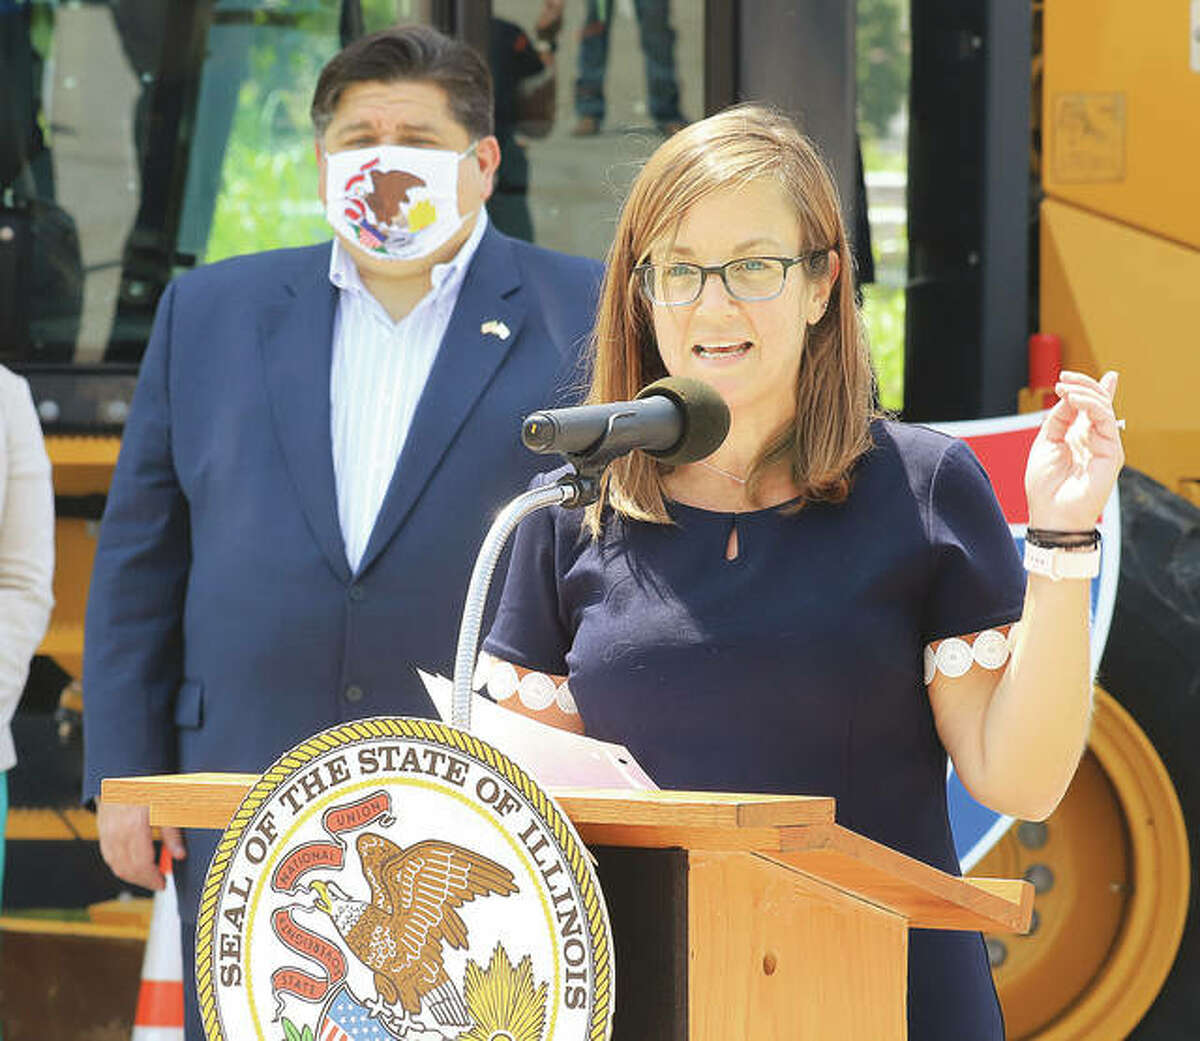 State Rep. Katie Stuart, D-Edwardsville, talks at the Collinsville announcement Tuesday by Gov. J.B. Pritzker, background, of the state's new $21.3 billion multi-year road and bridge improvement plan.